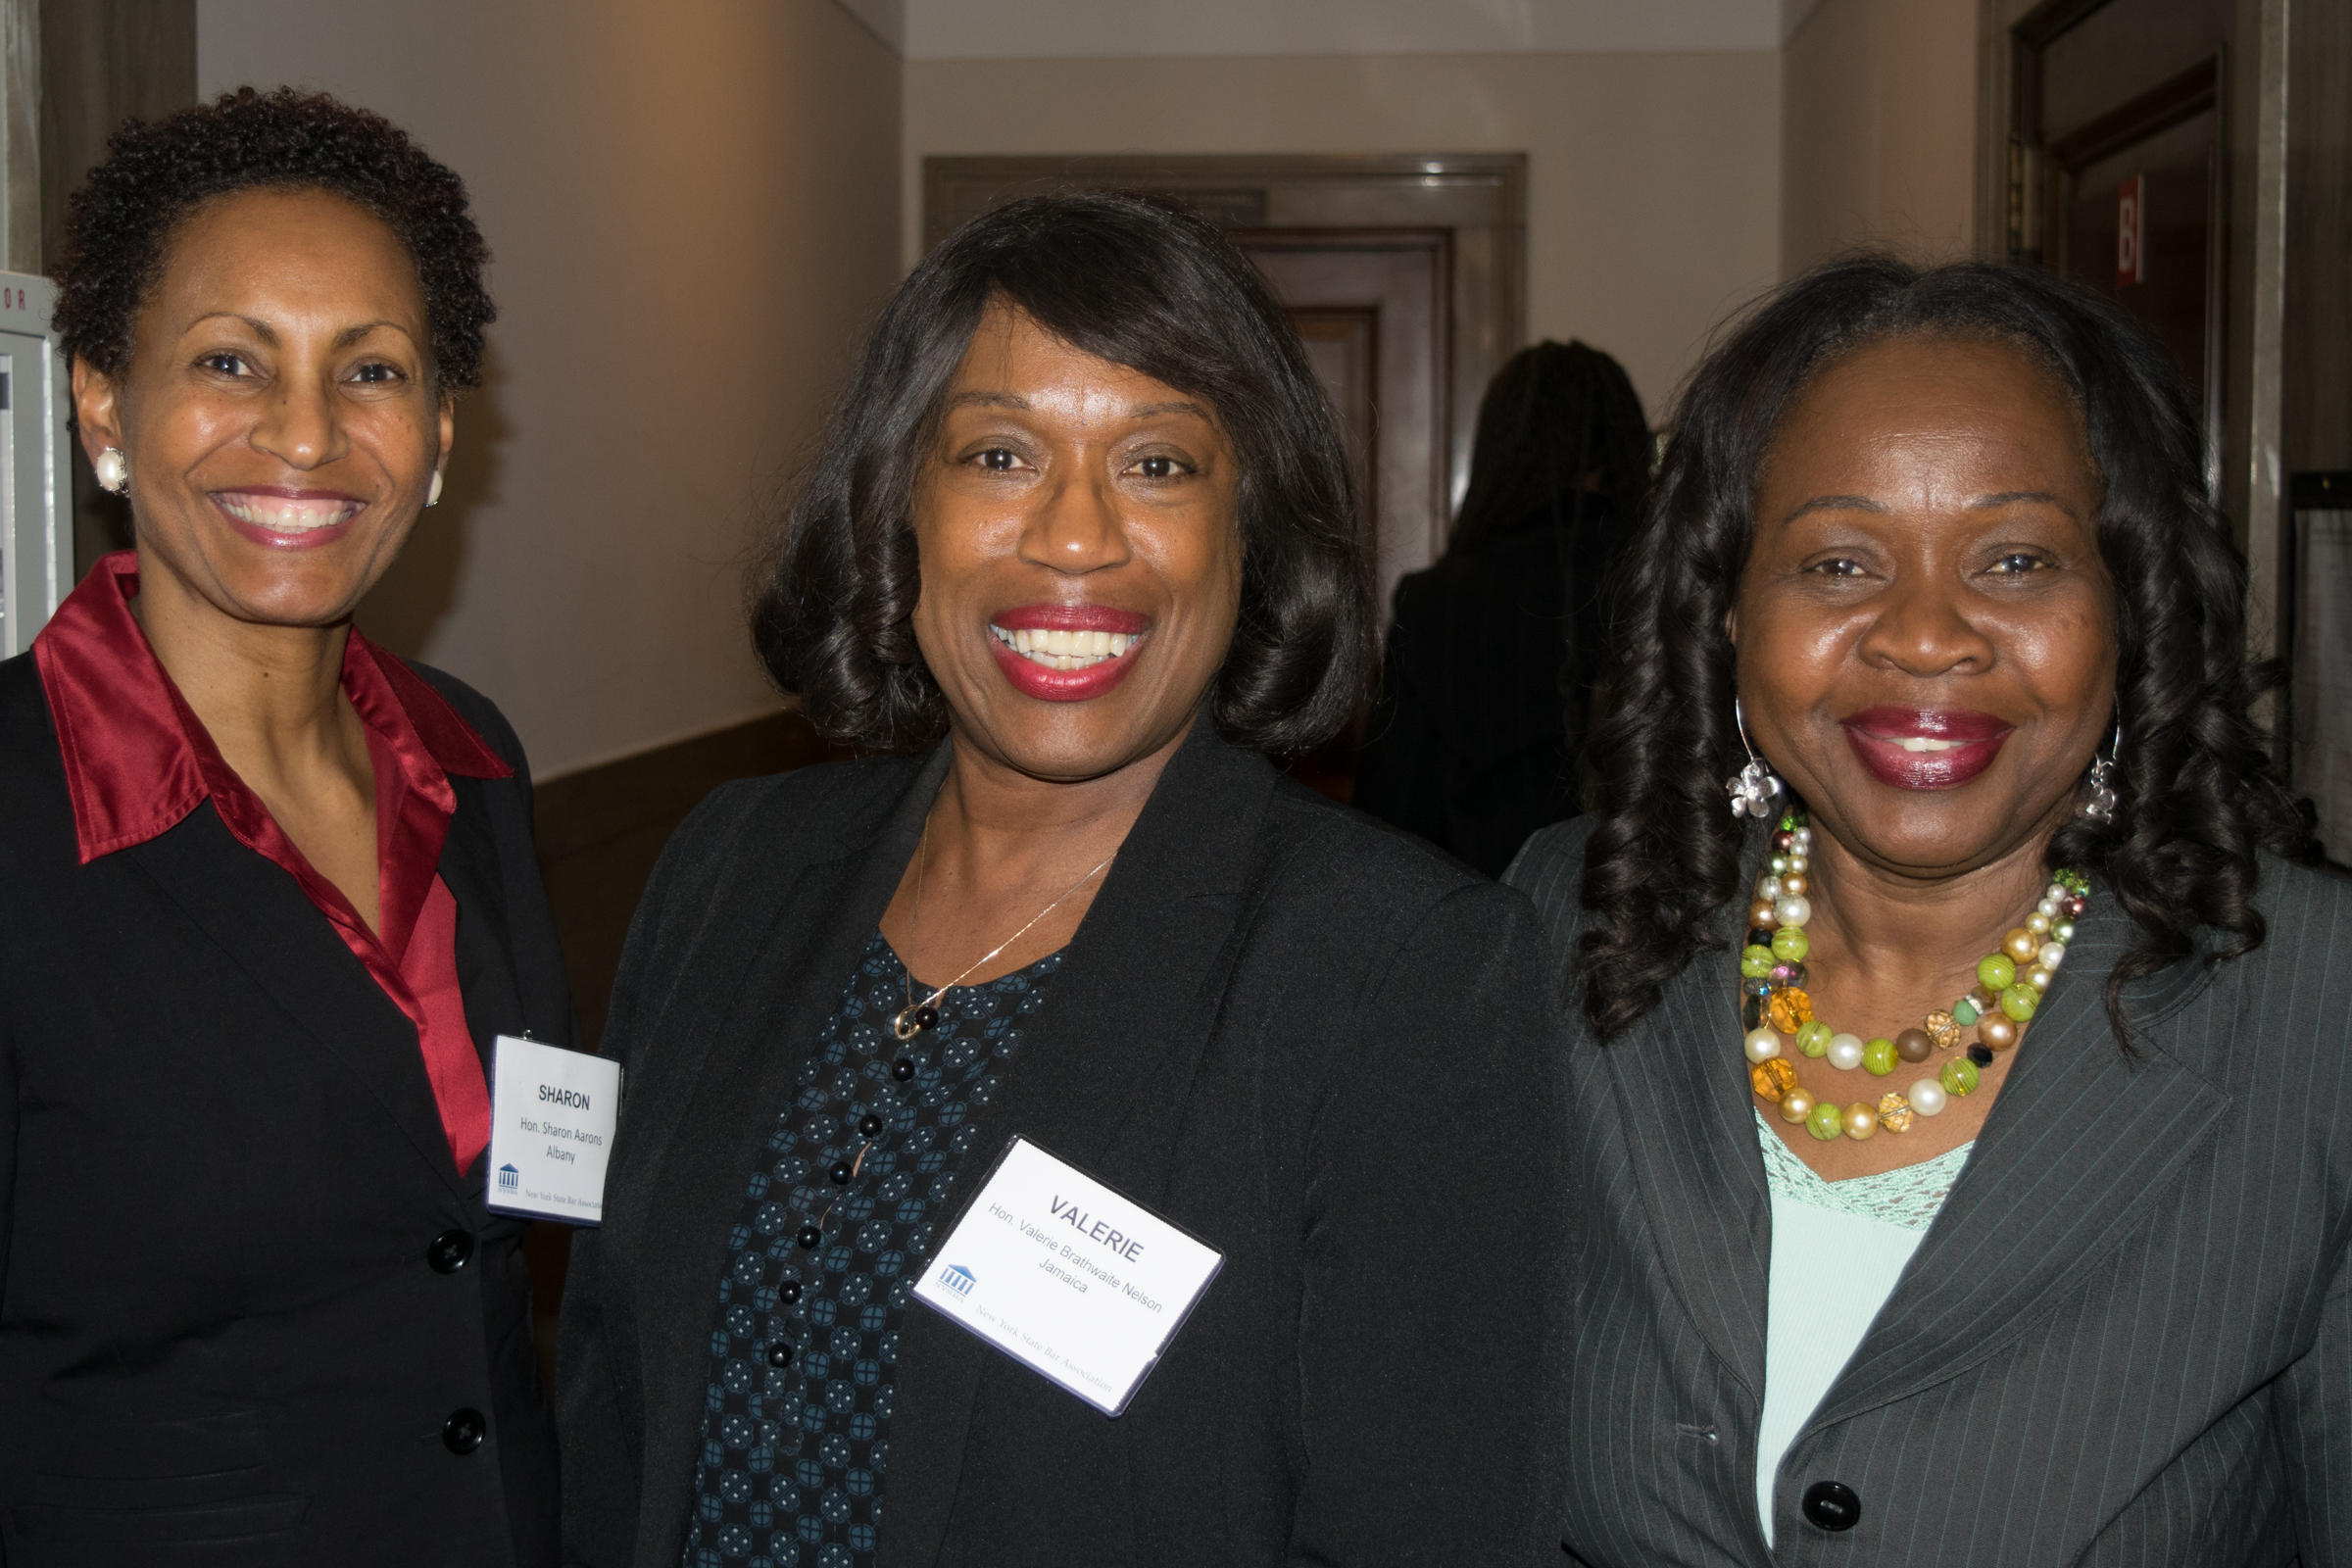 From left: Hon. Sharon Aarons, Hon. Valerie Brathwaite Nelson, and Hon. Sylvia Hinds-Radix.